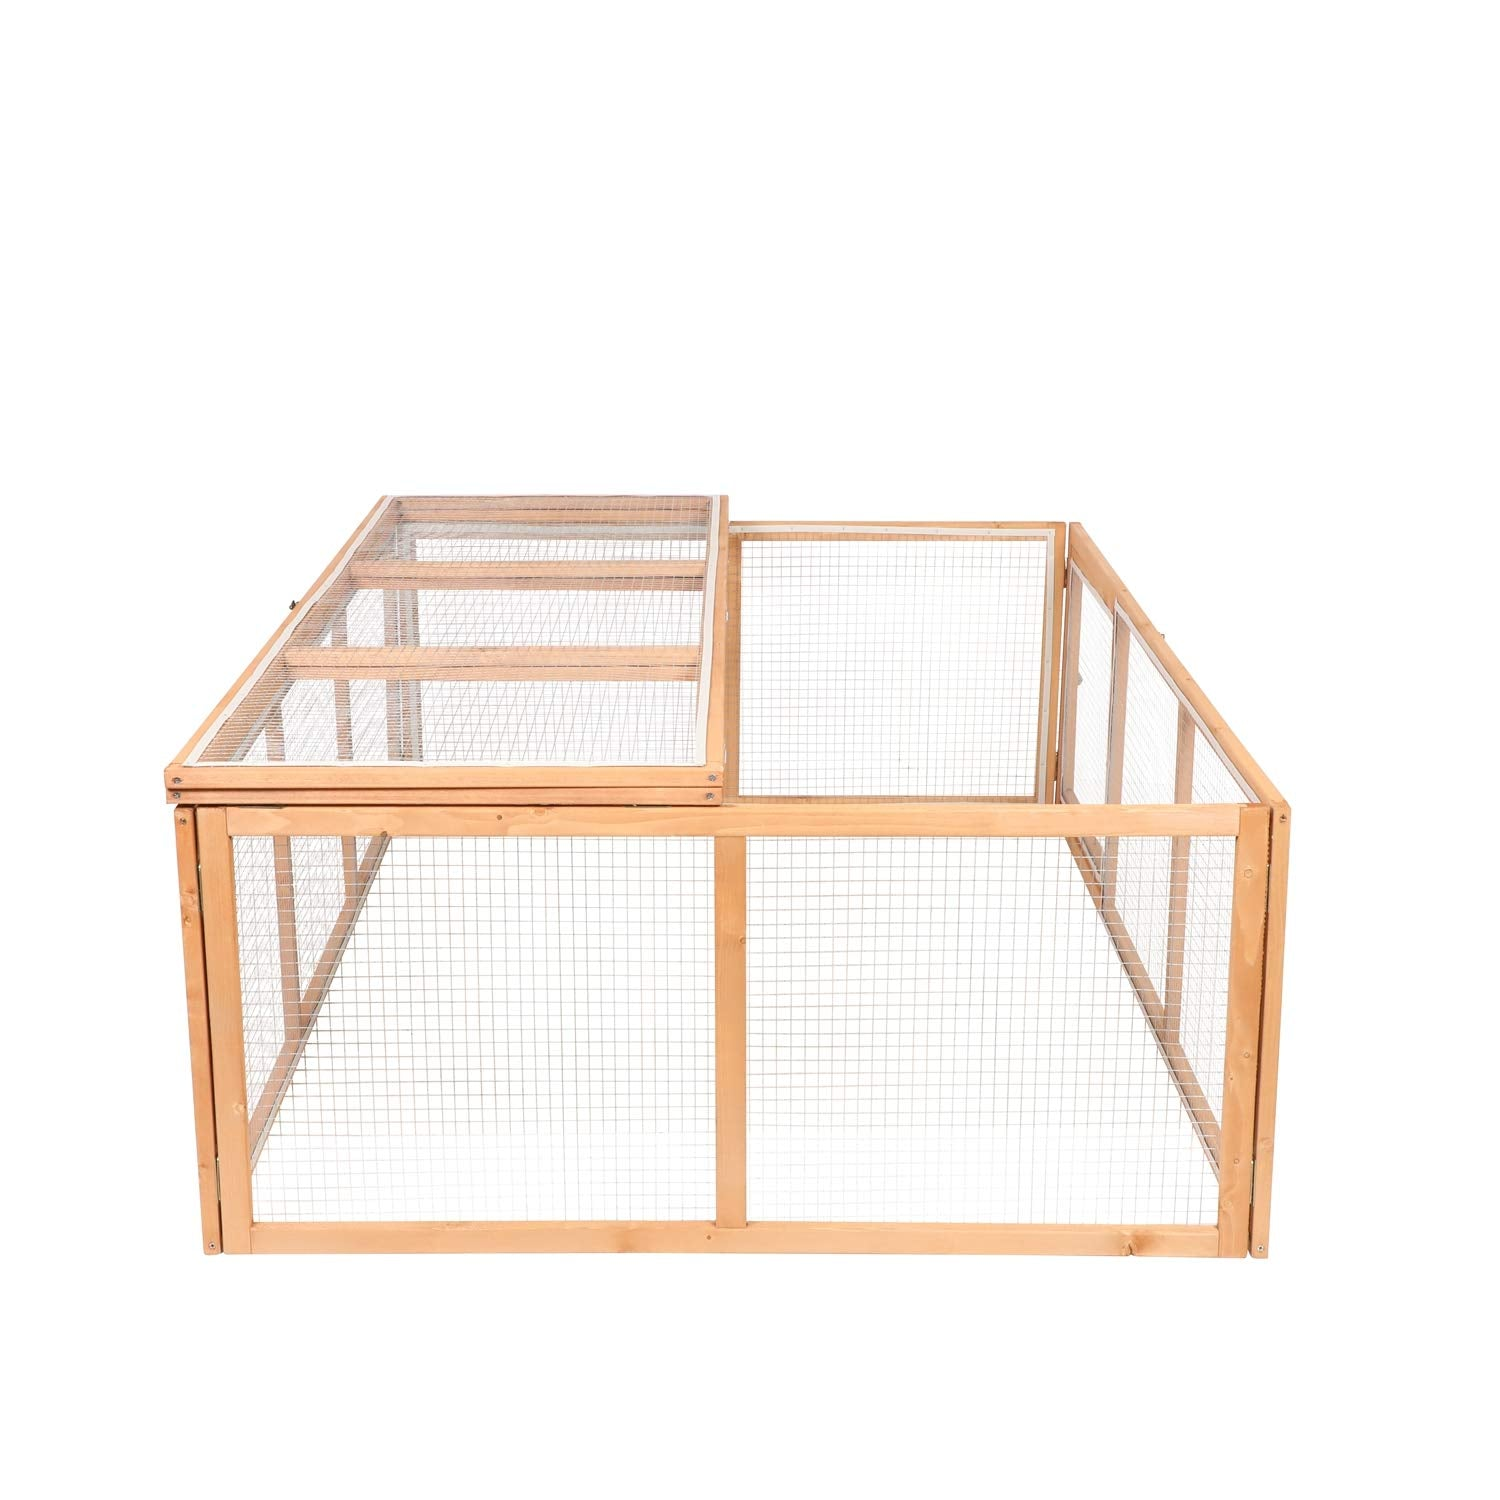 Light Salmon Wooden Outdoor Chicken Coop